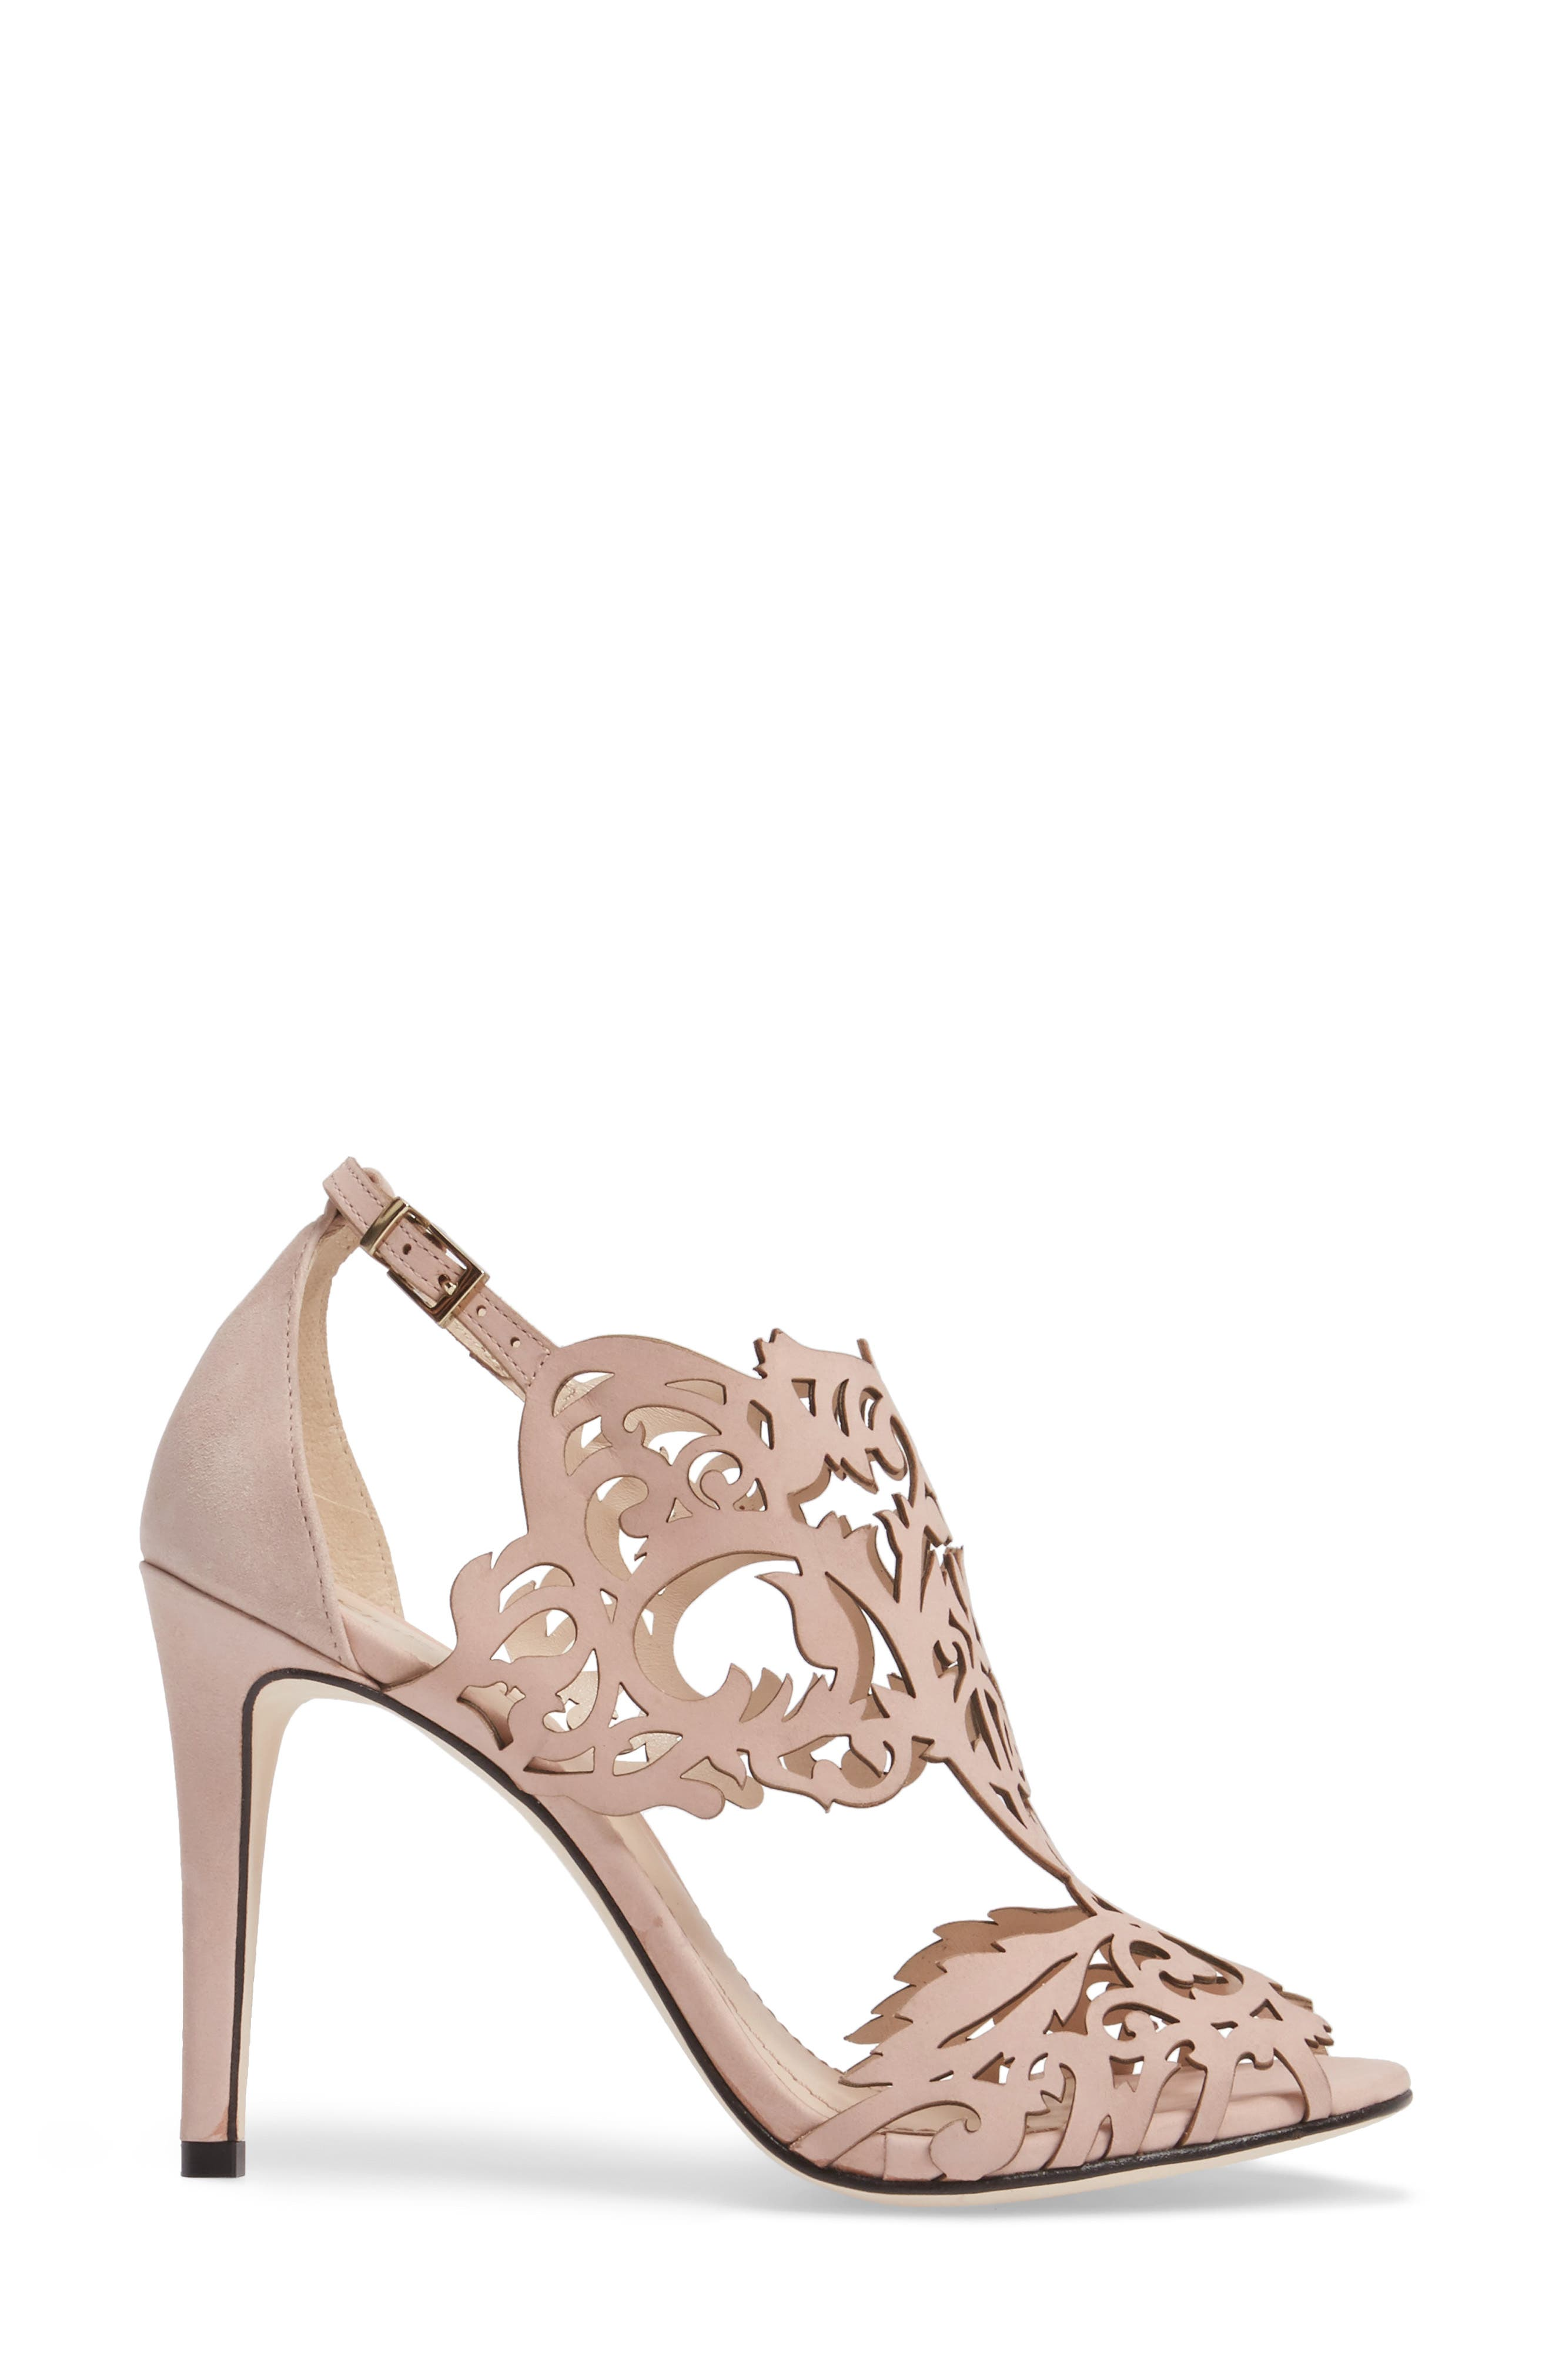 Marcela Laser Cutout Sandal,                             Alternate thumbnail 3, color,                             Blush Nubuck Leather